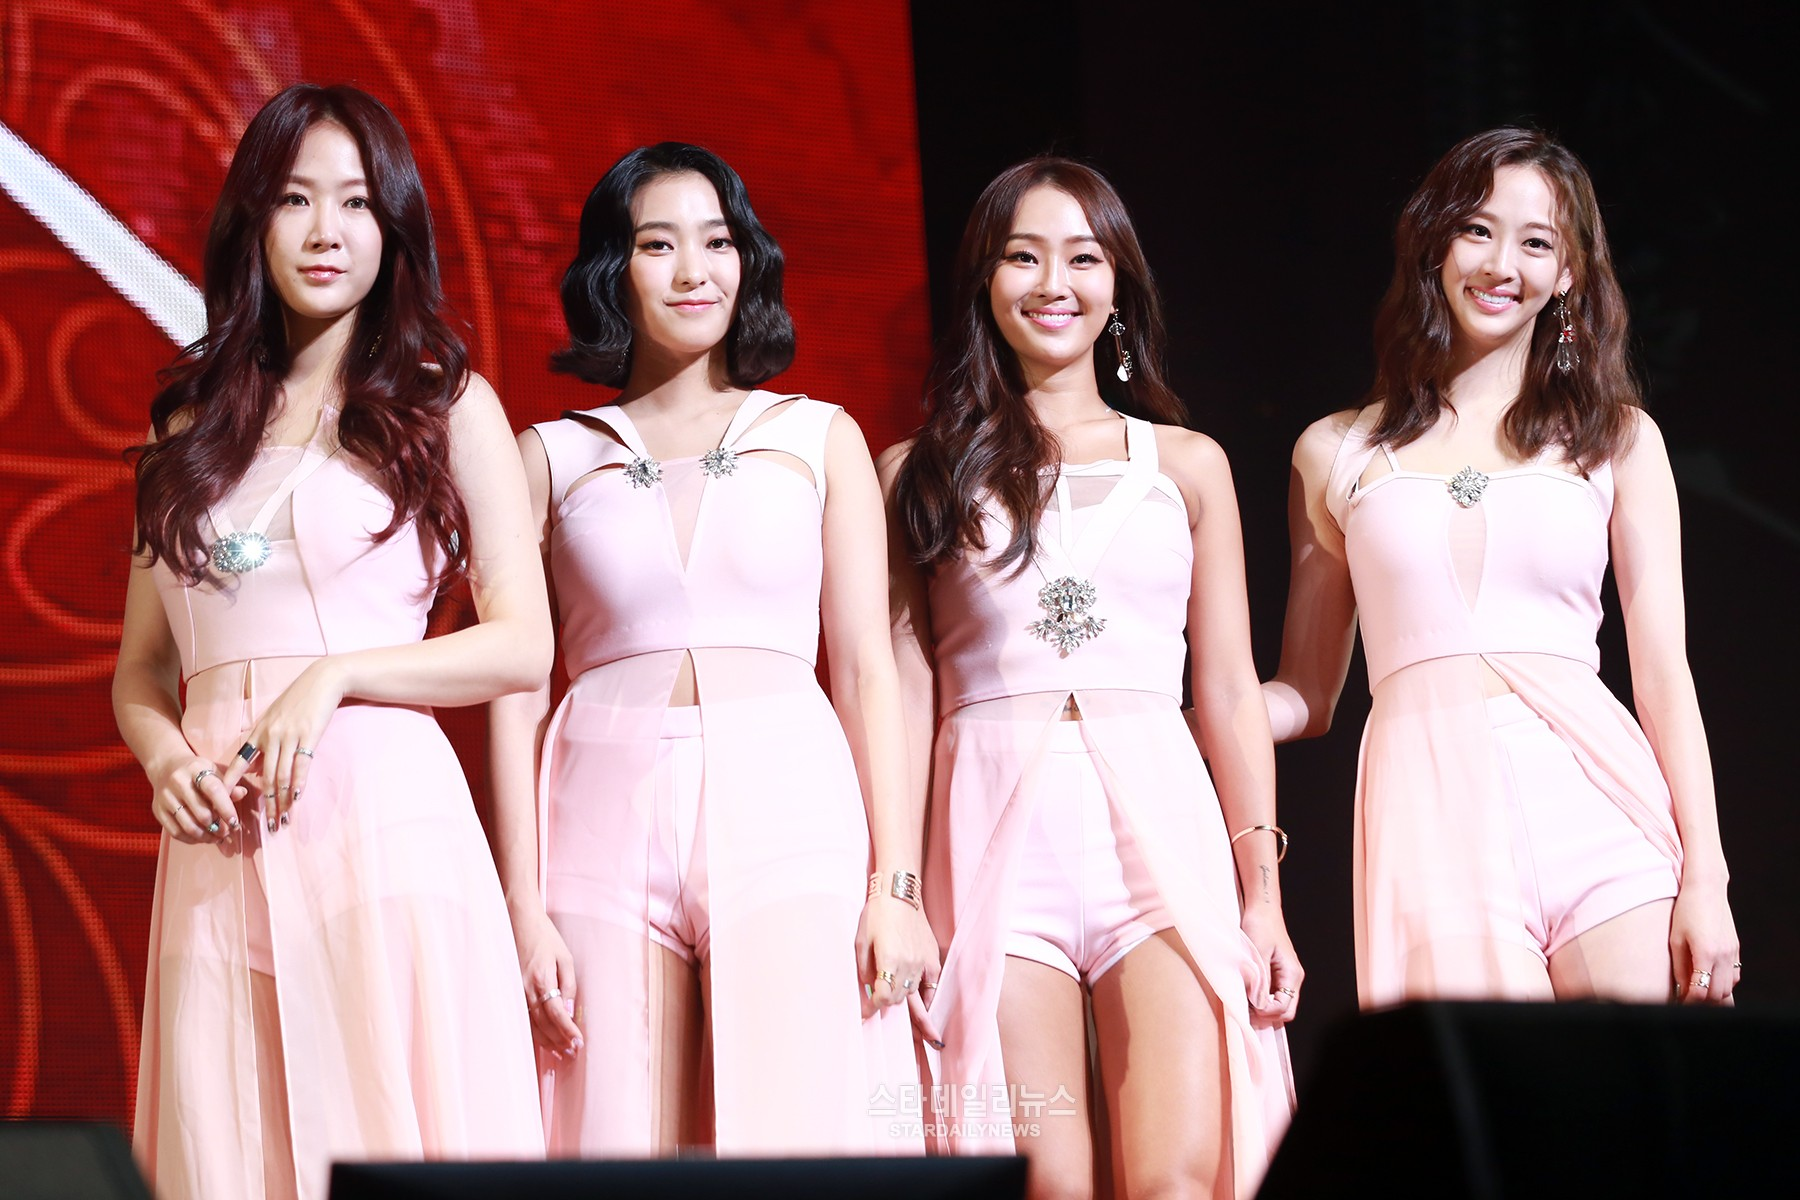 SISTAR's Hyorin Wrote Song On New Album While Thinking Of Members